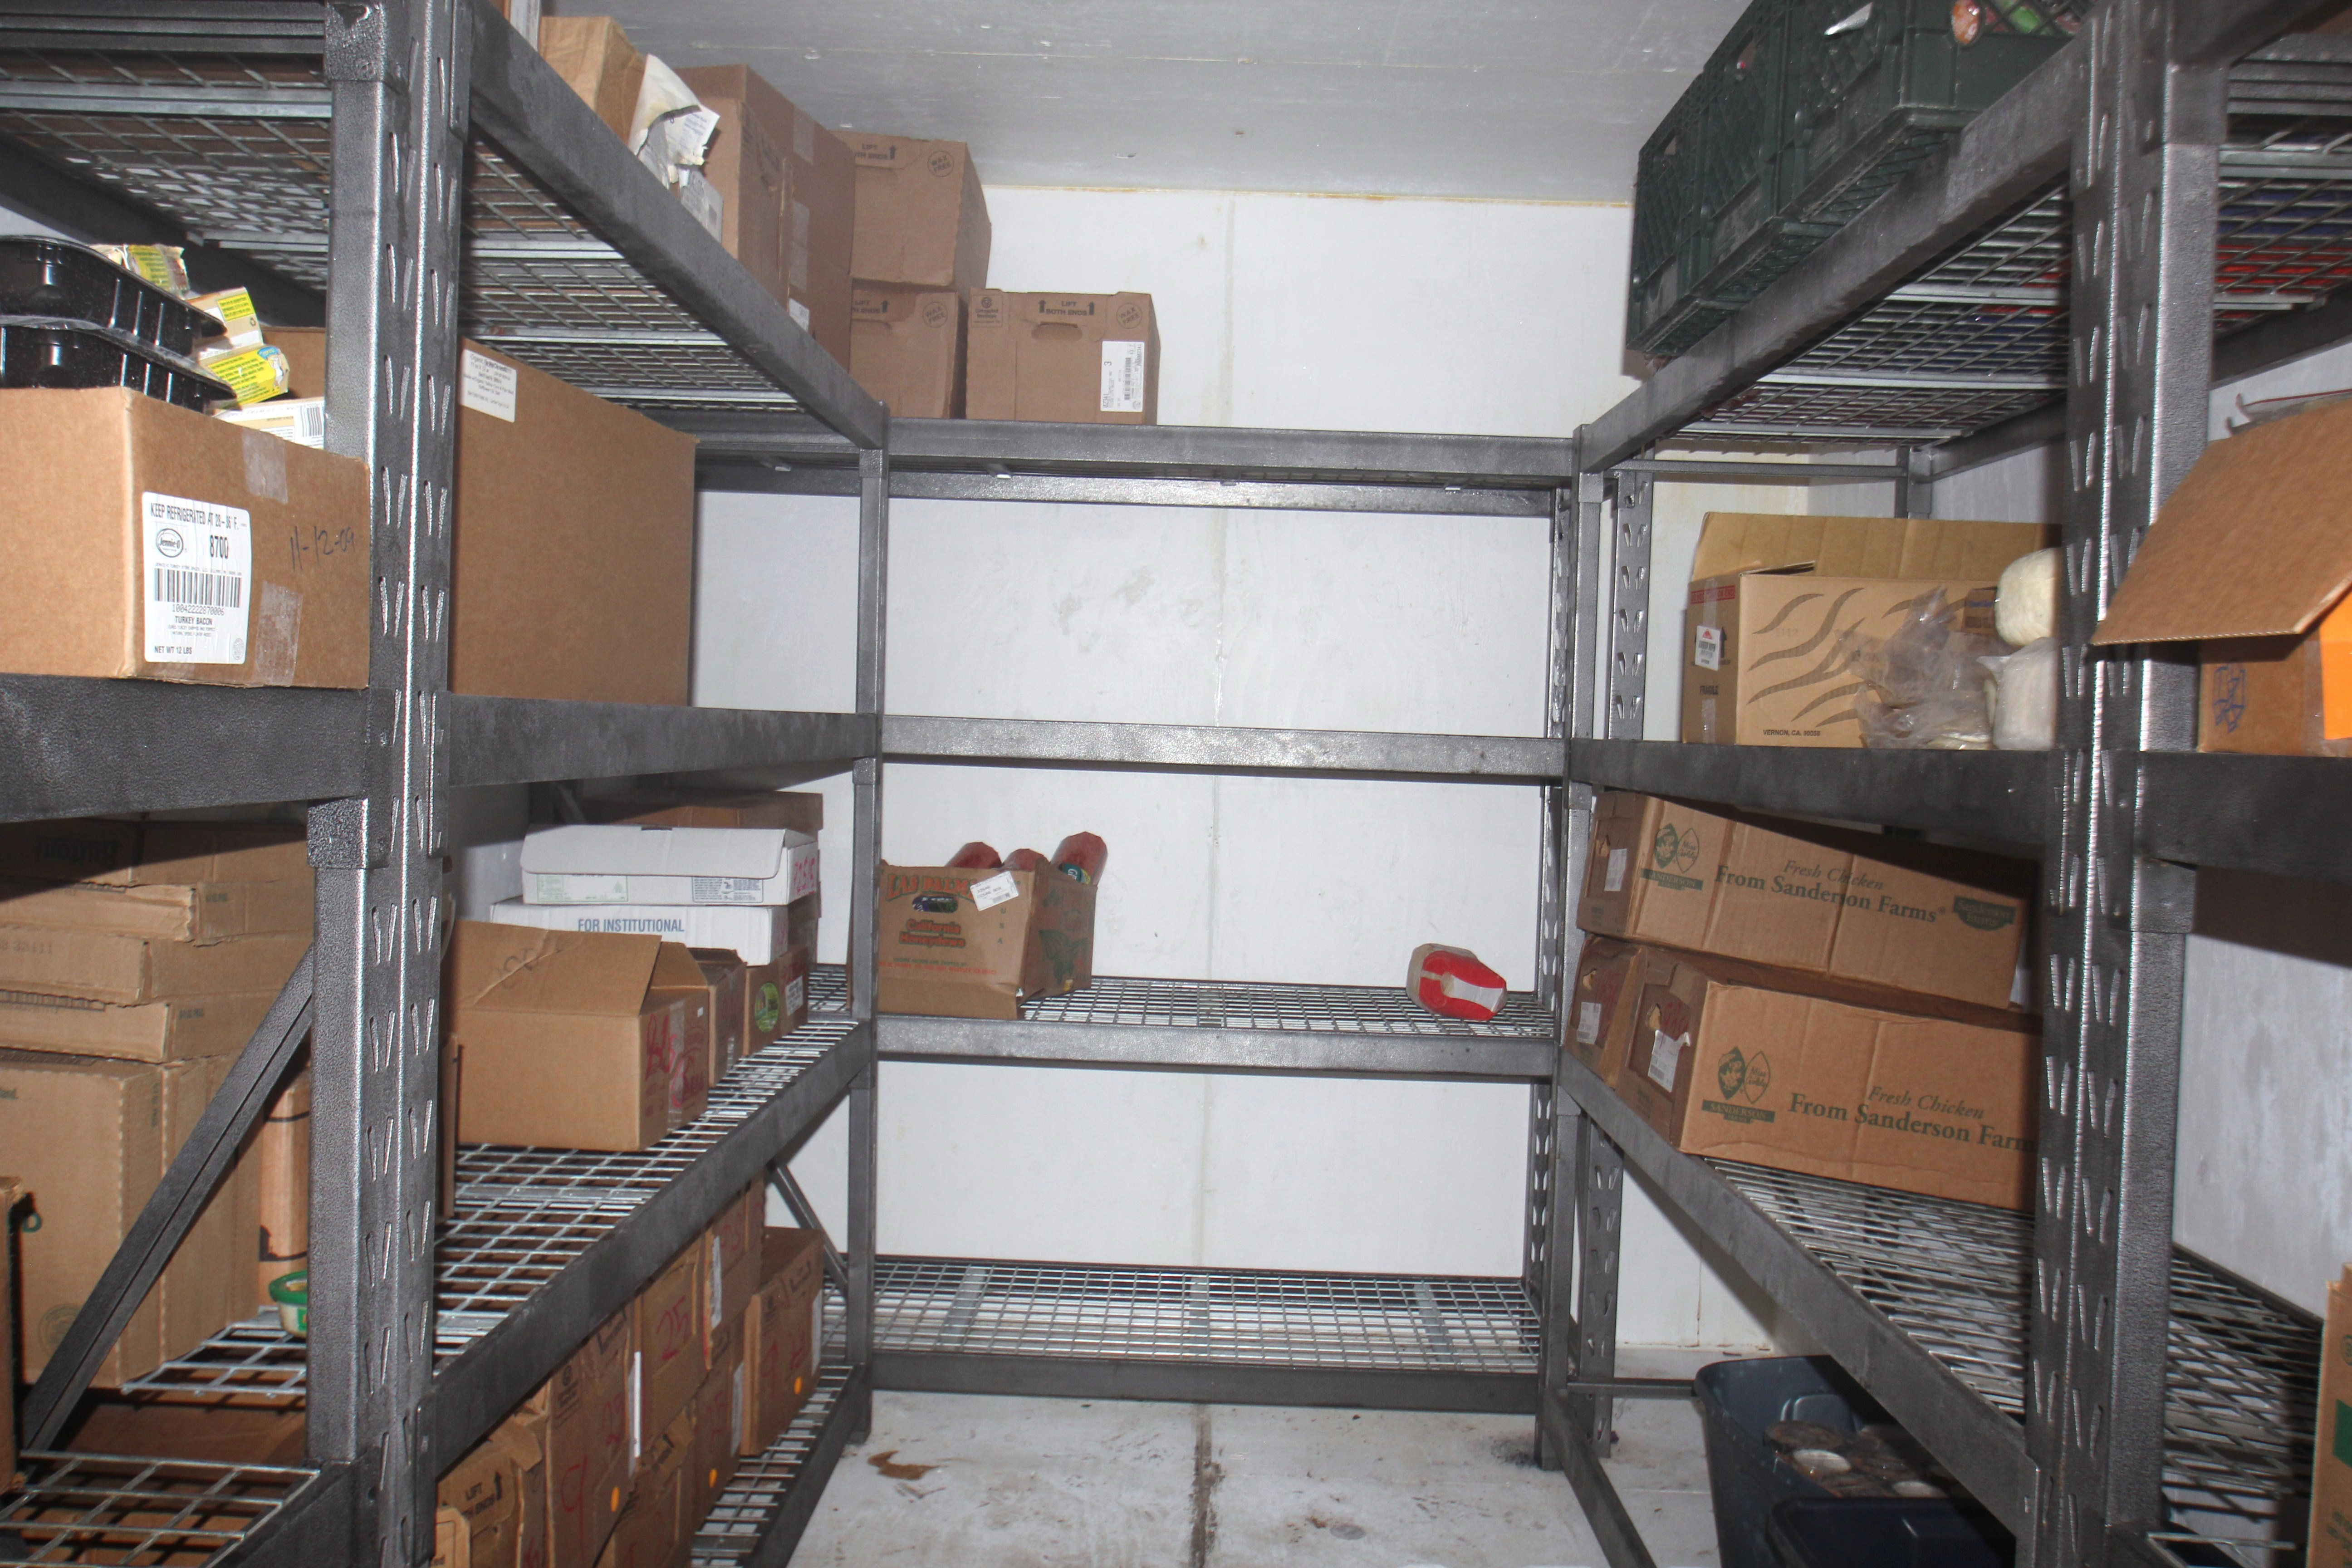 The Freezer Is Bare At The St. Vincent De Paul Soup Kitchen